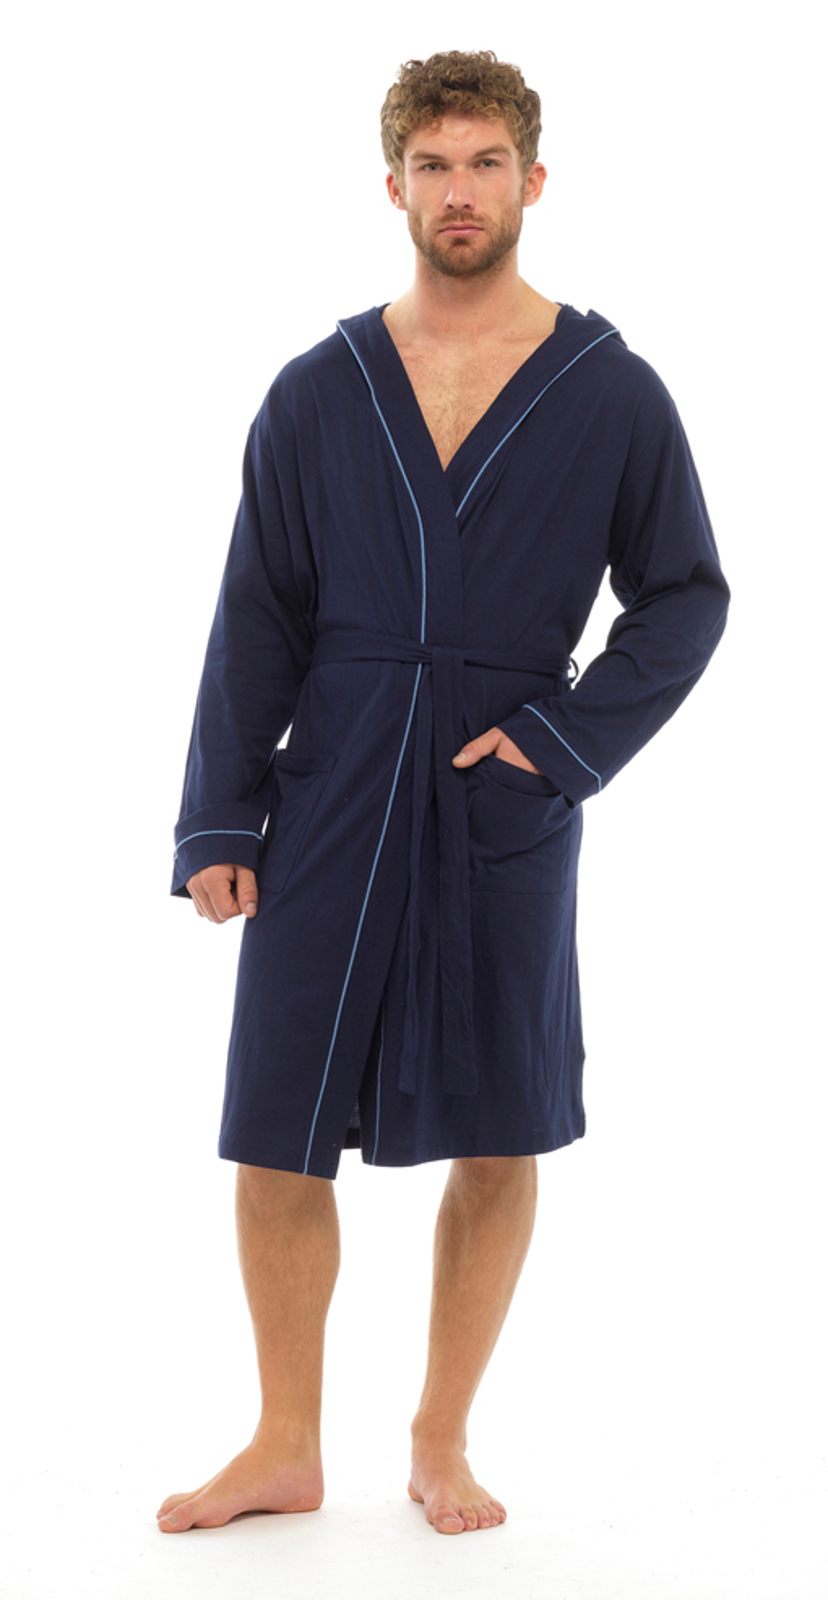 mens lightweight hooded robe summer dressing gown 100 cotton bathrobe size. Black Bedroom Furniture Sets. Home Design Ideas